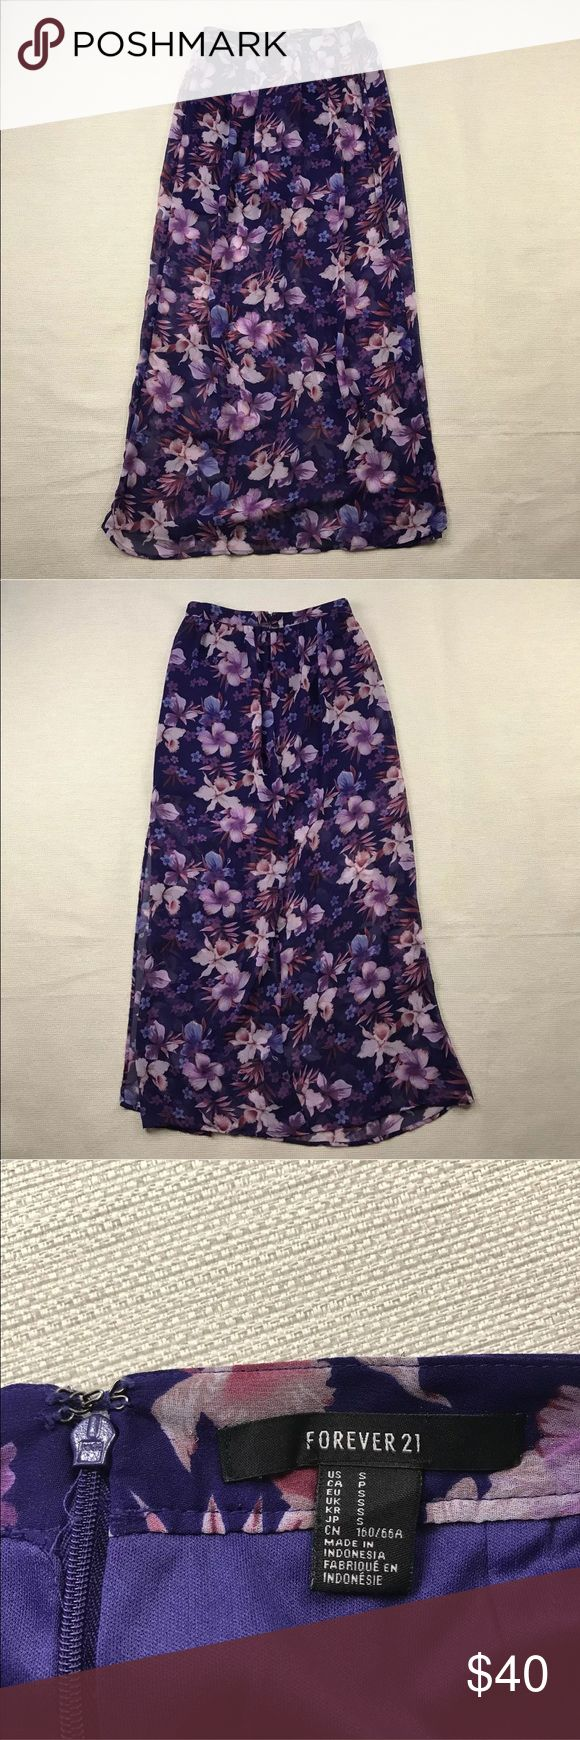 """Forever 21 Sheer Floral Maxi Skirt NWOT Forever 21 Sheer Floral Maxi Skirt NWOT  Floral pattern on the outside, mini skirt lining.  Back zip closure.  Women's Size: S  No flaws.  Measurements lying flat: Waist 13"""", Length 39"""".  Please, review pictures. You will get the item shown. Smoke & pet free home. Forever 21 Skirts"""